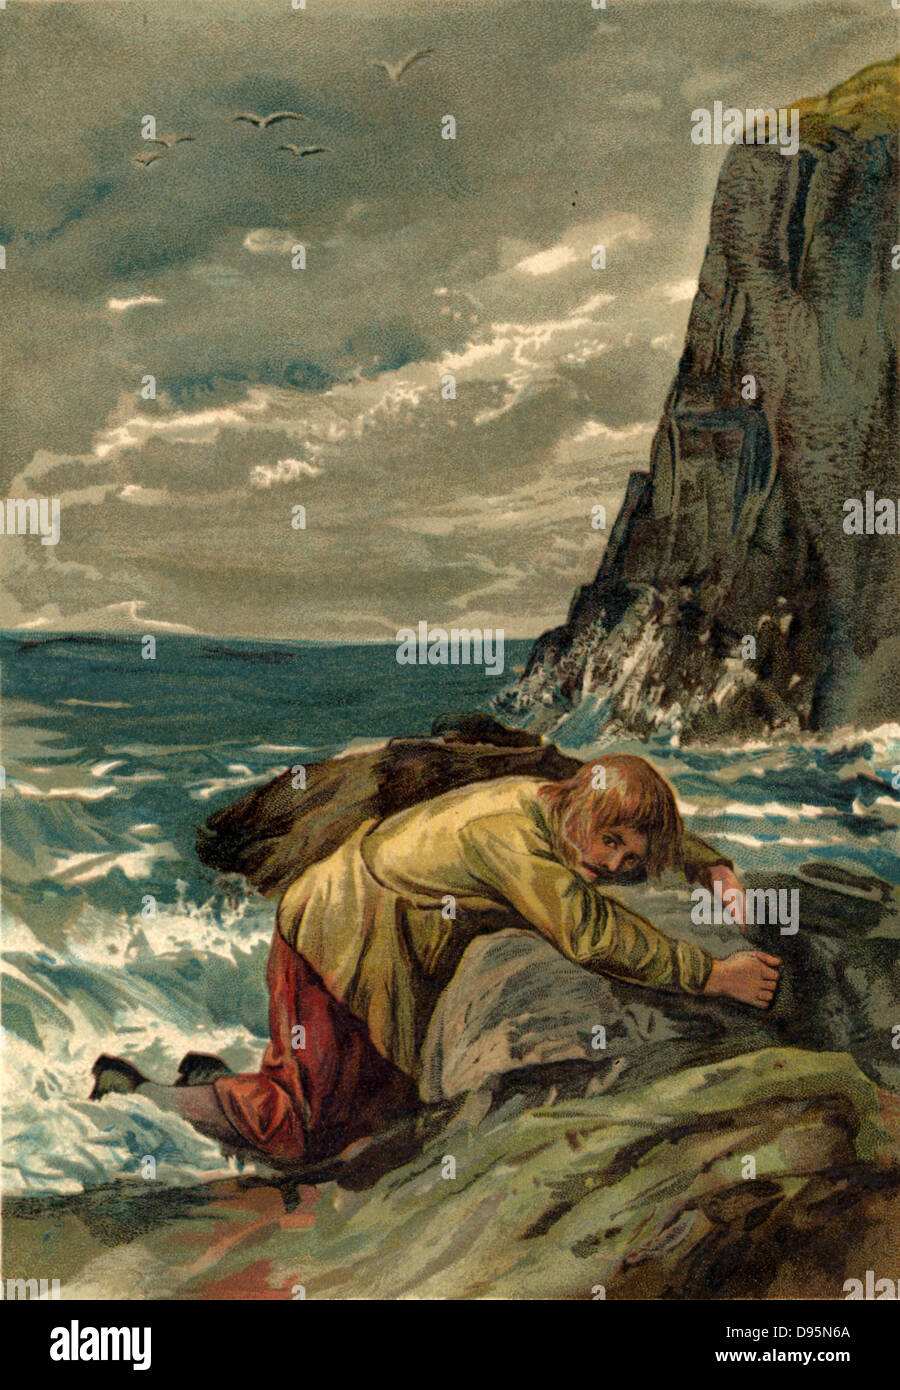 Robinson Crusoe Robinson Crusoe After The Shipwreck Washed Onto The Rocks By The